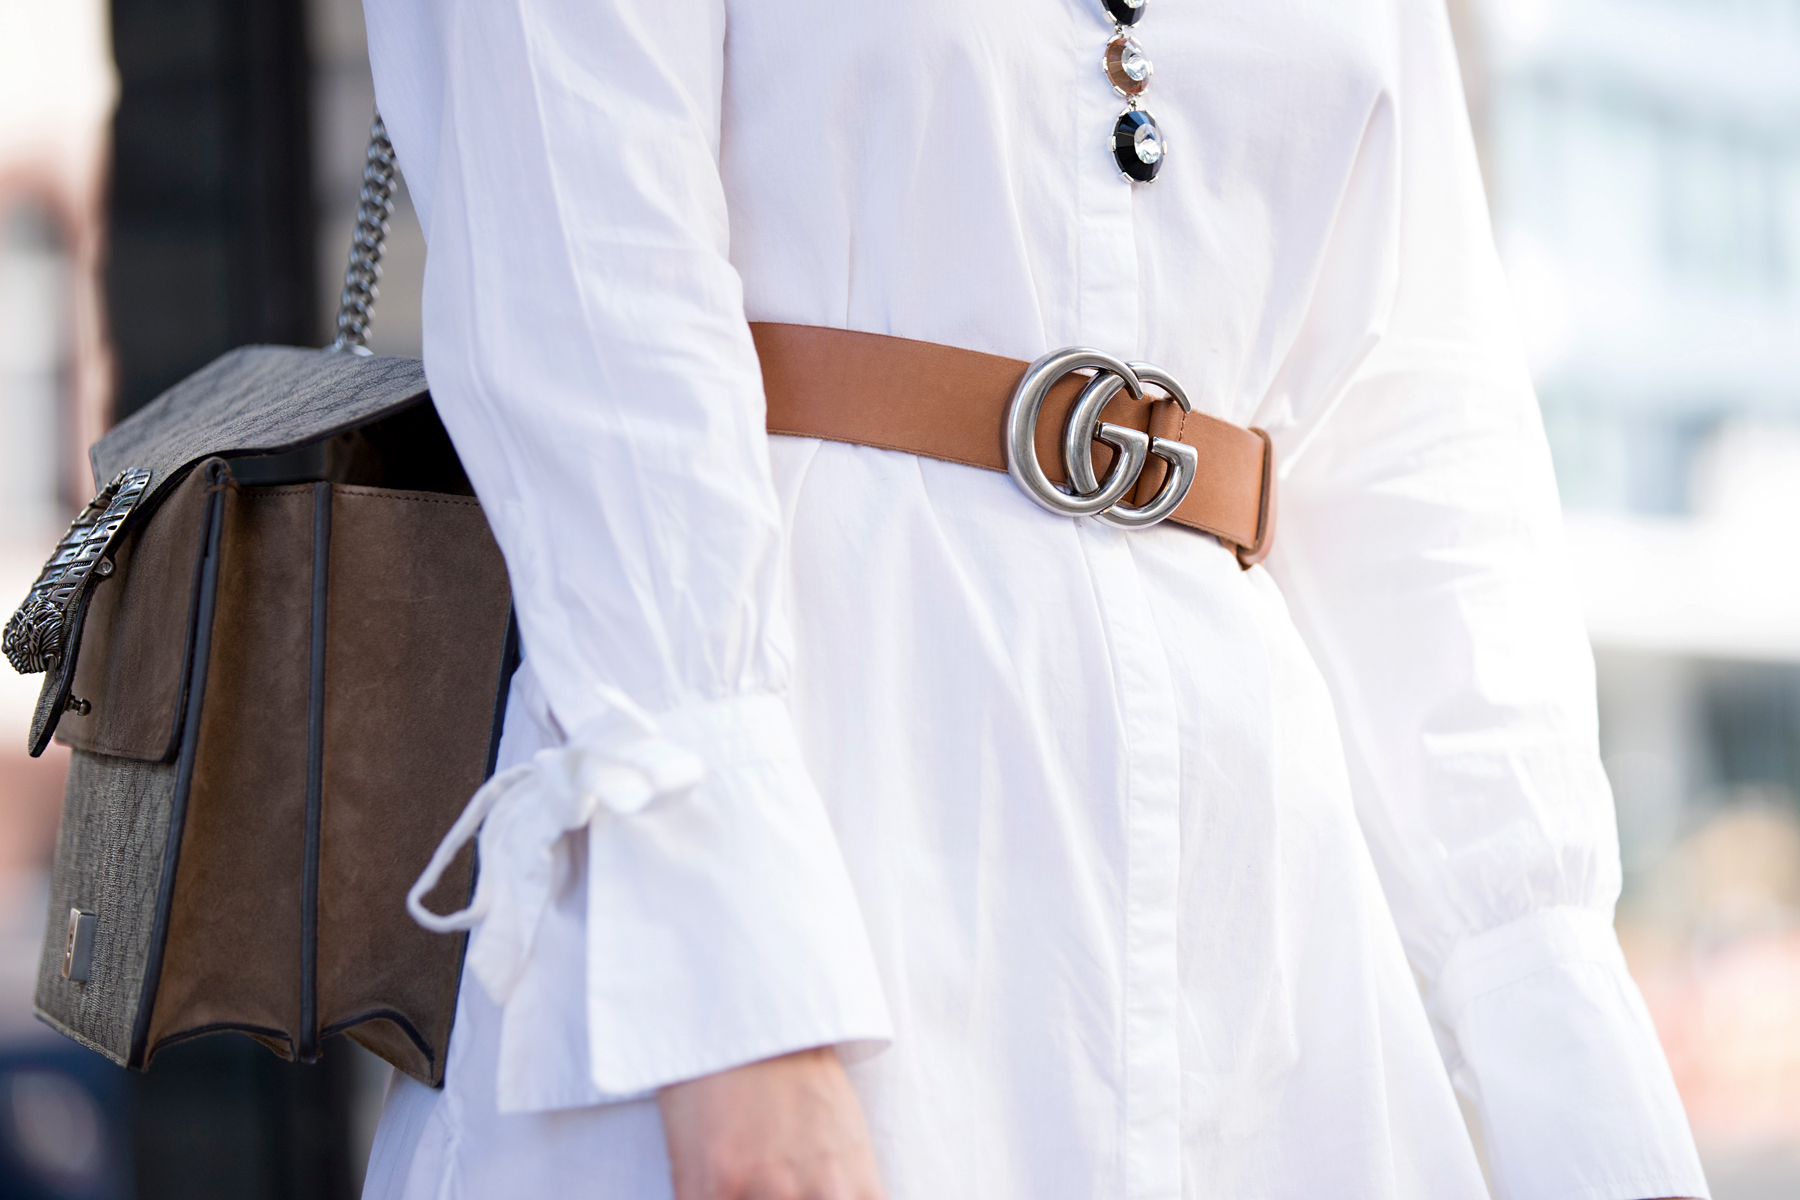 outfit white dress gucci belt dionysus bag pompom heels aquazzura diy blogger ootd fashionblogger summer streetstyle berlin bloggers cats & dogs modeblog ricarda schernus lifestyleblogger 3